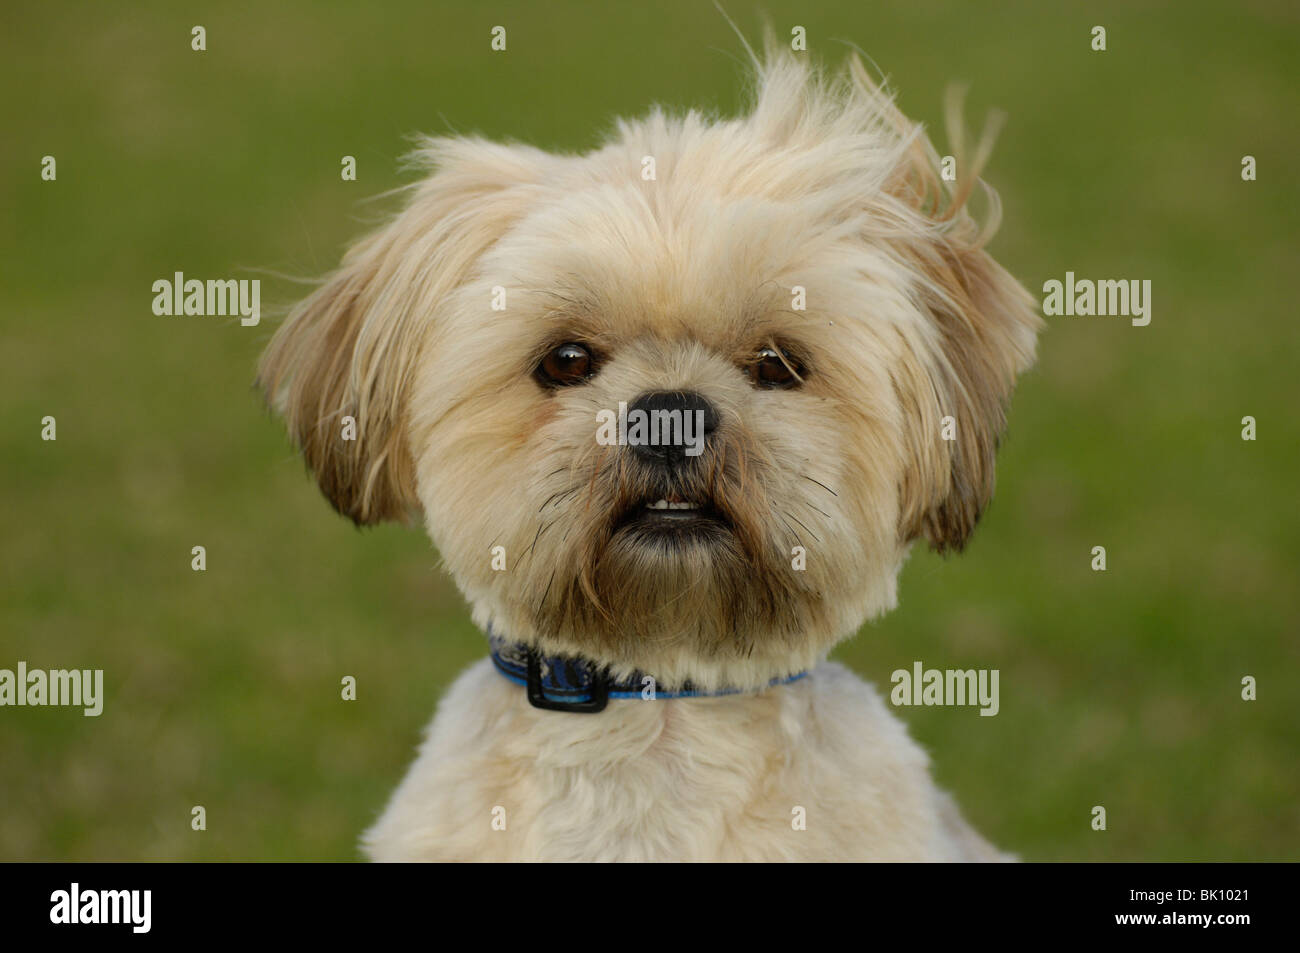 Lhasa Apsos Short Hair High Resolution Stock Photography And Images Alamy